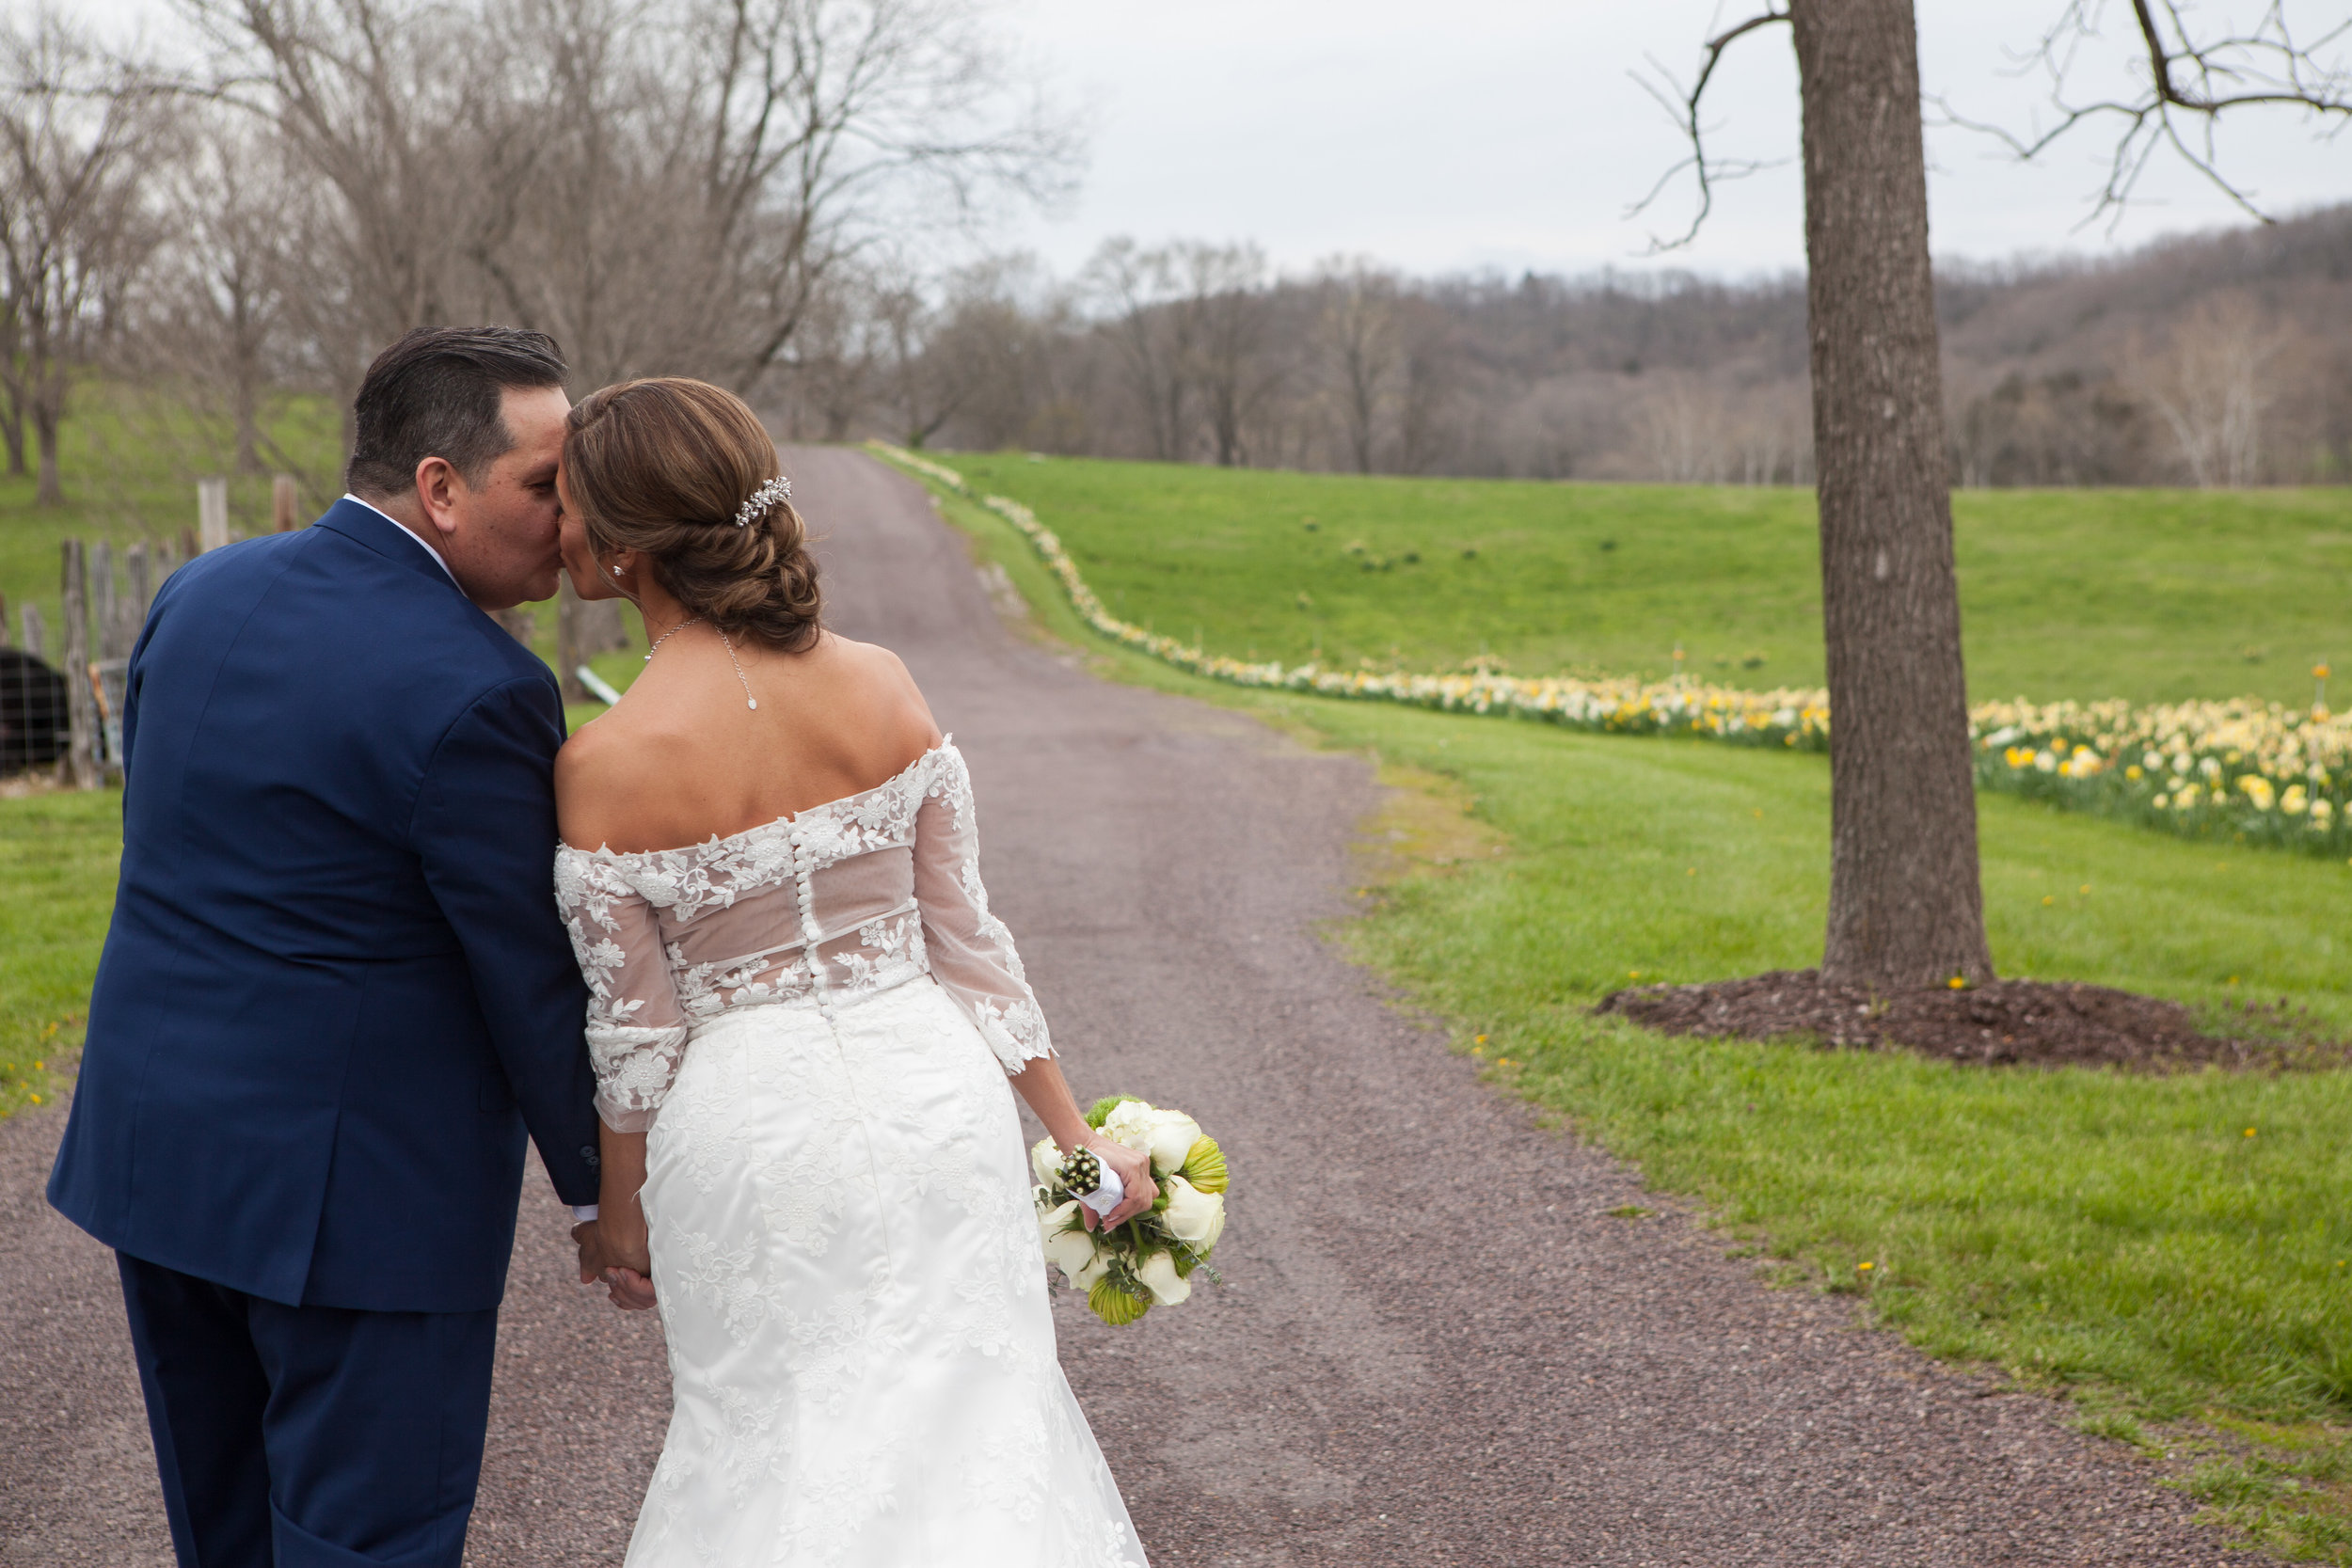 A Cinderella Love Story at a St. Louis Wedding